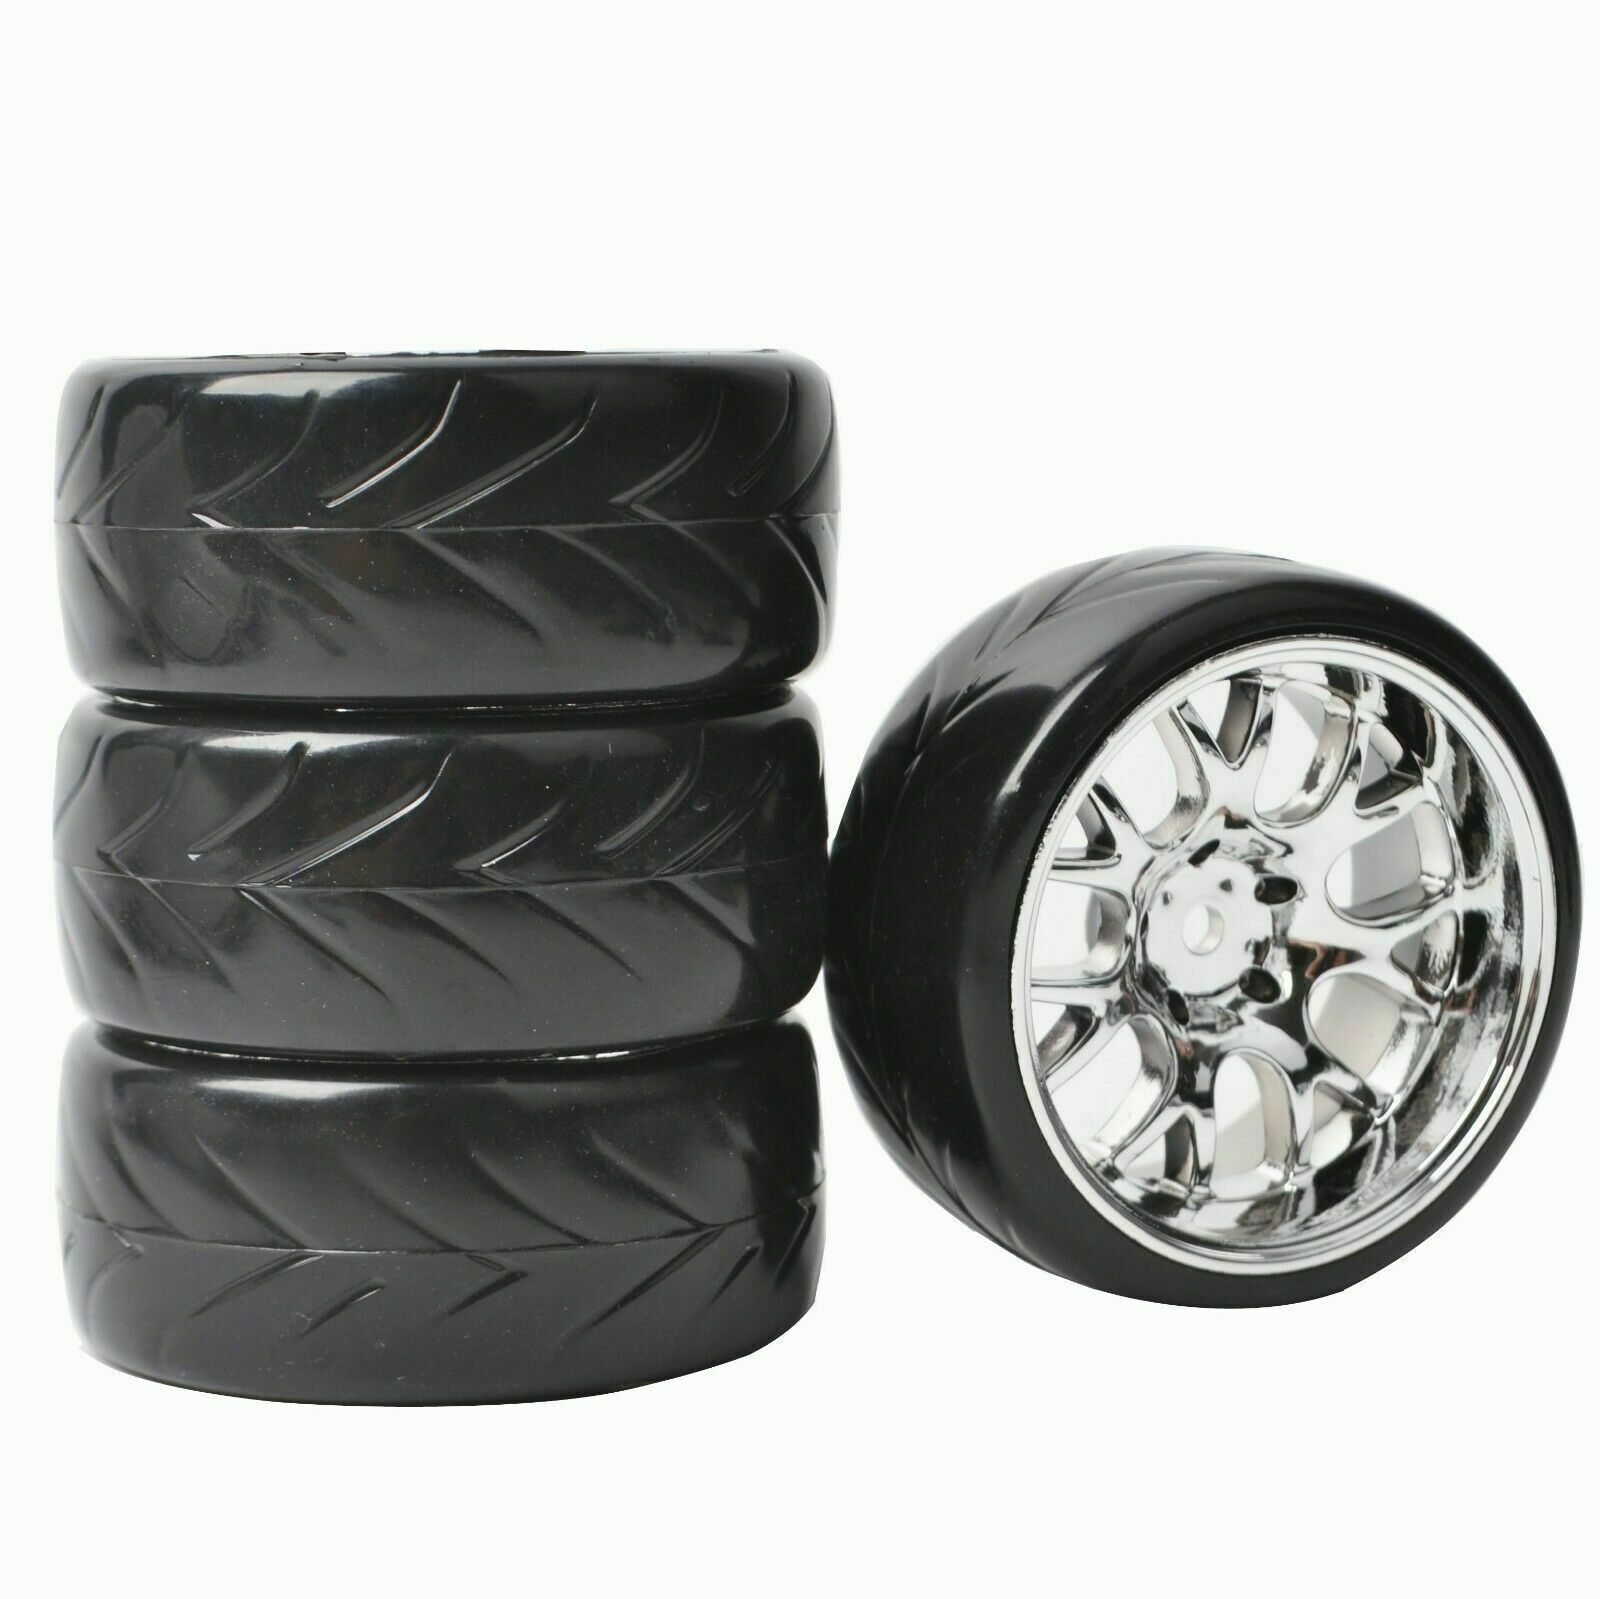 Фото - 4PCS 1/10 RC Drift Racing Tires Wheels 12mm Hex for Tamiya HSP HPI On Road Car Parts 4pcs 1 64 modified wheels rubber tires with axles and end cap upgrade parts for rc model car